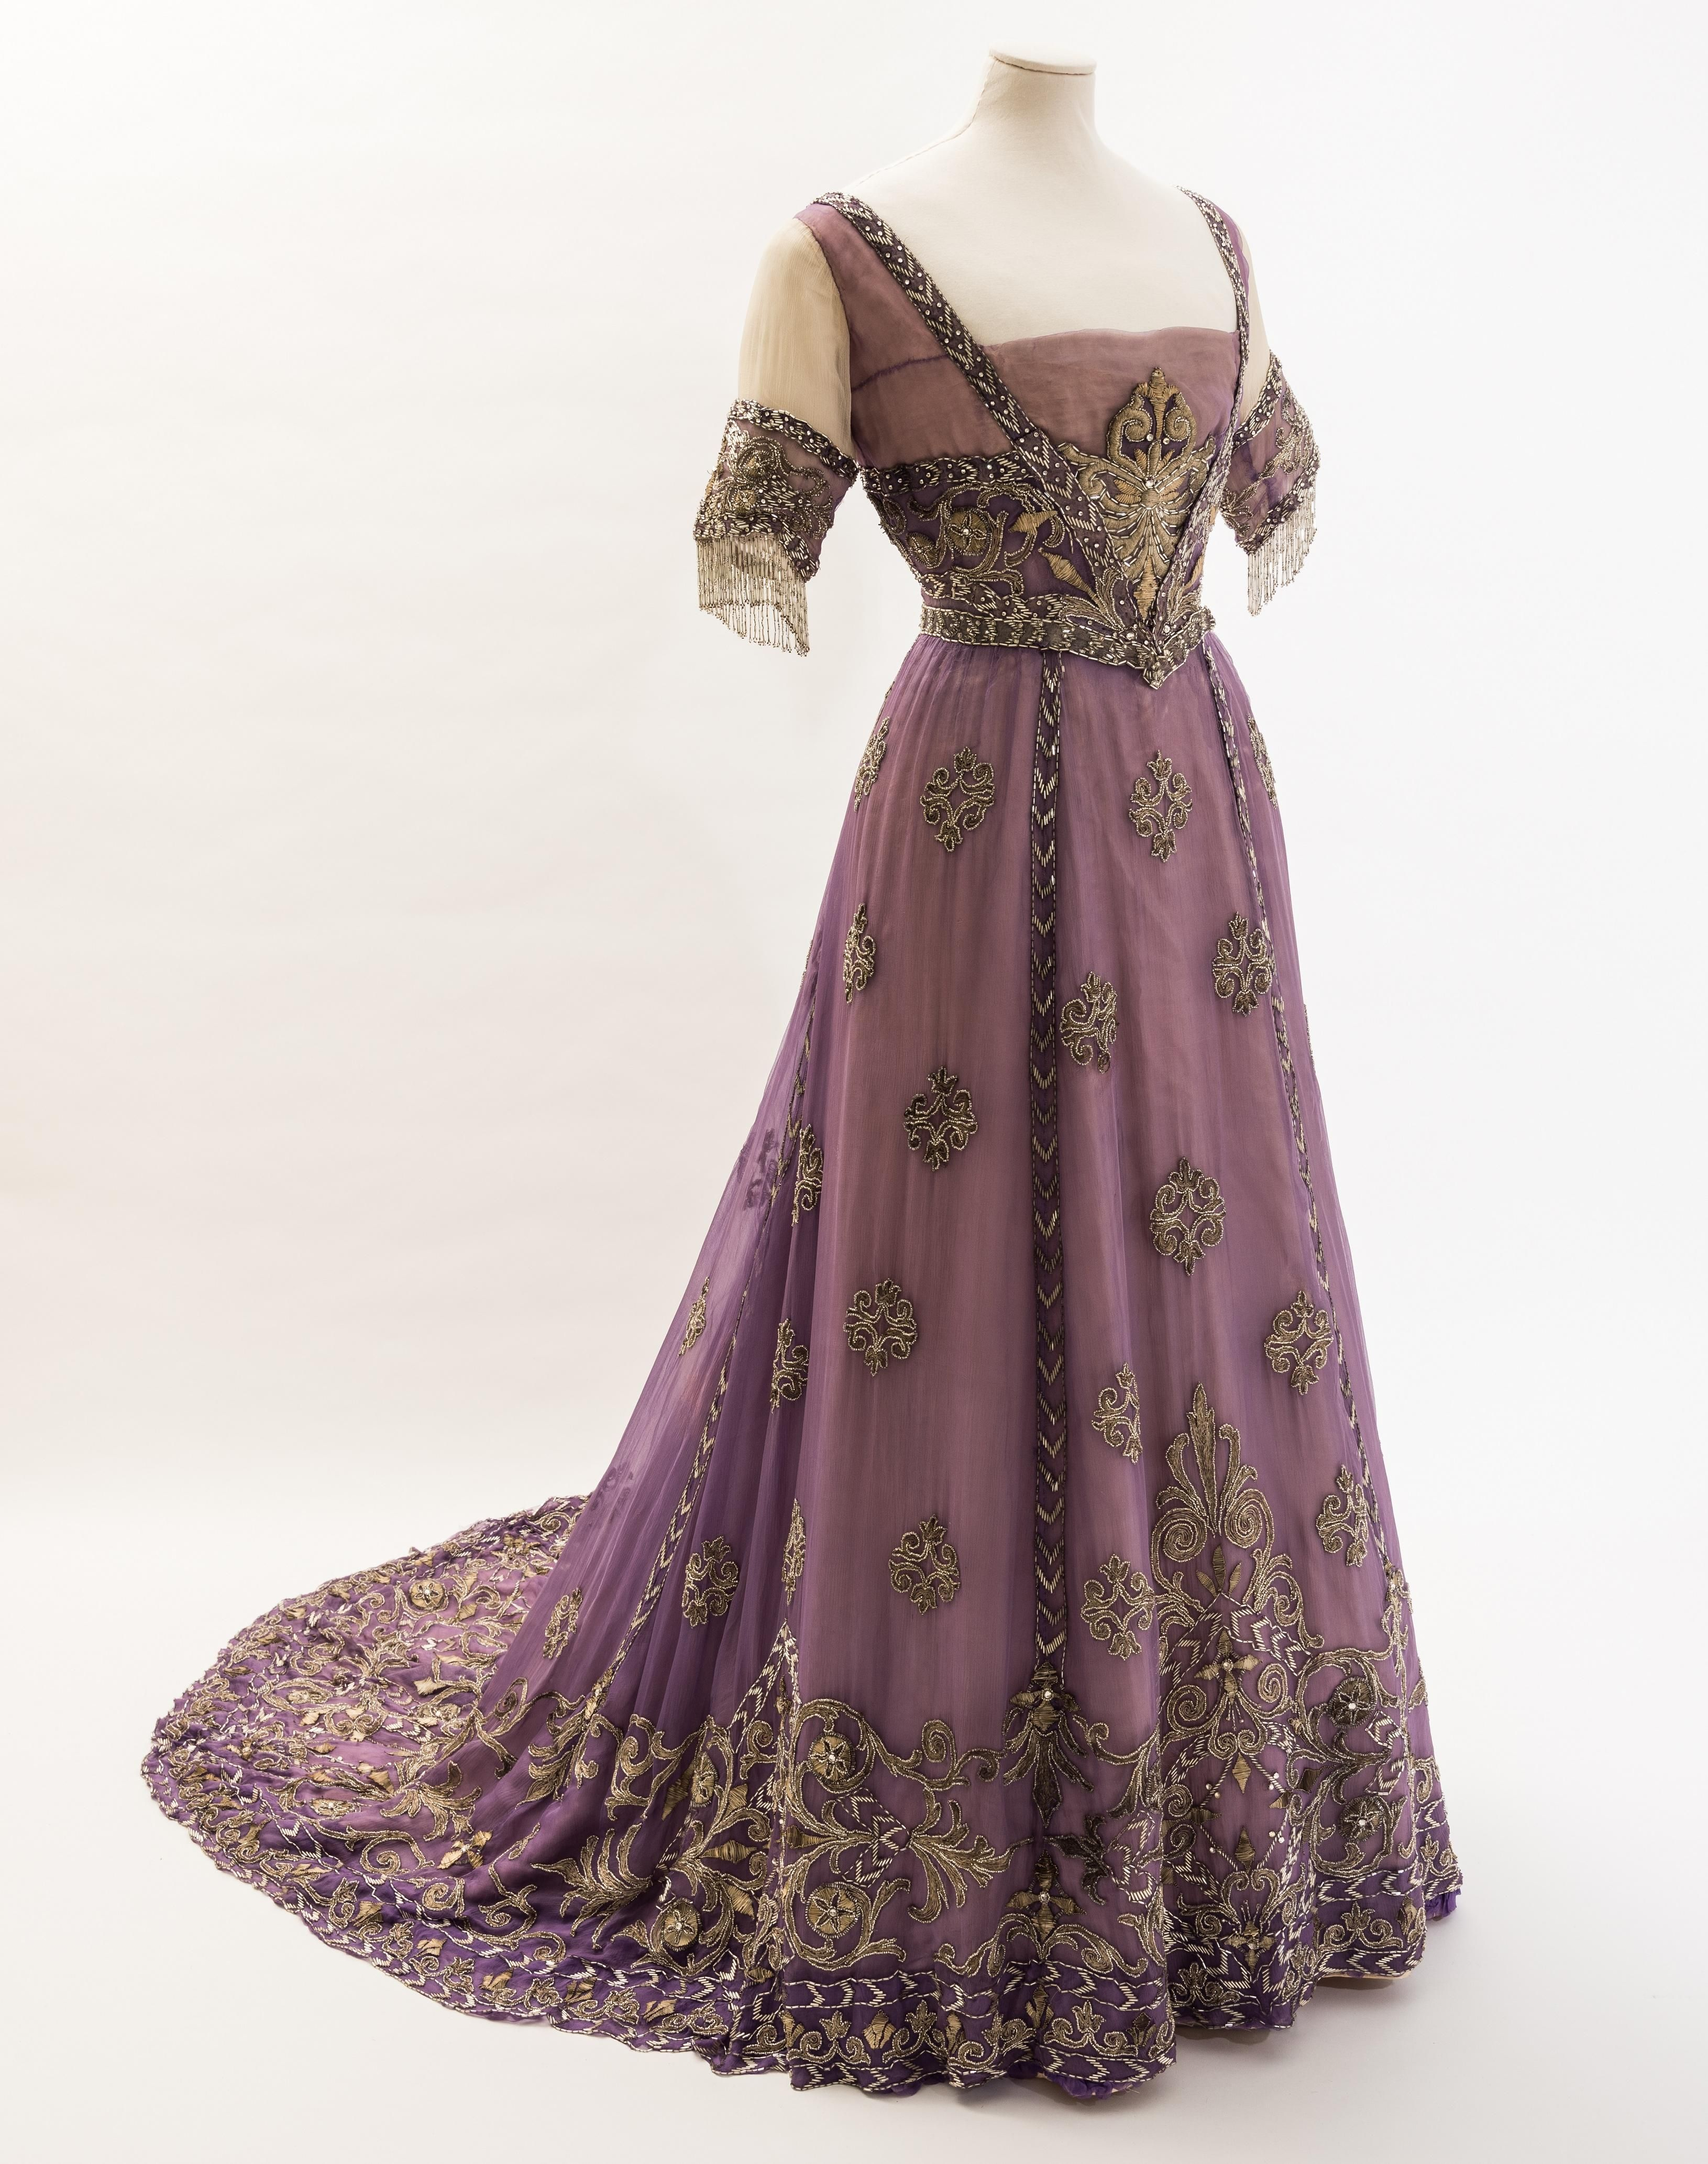 c.1910 Embroidered chiffon evening dress by Doeuillet, Paris, for ...